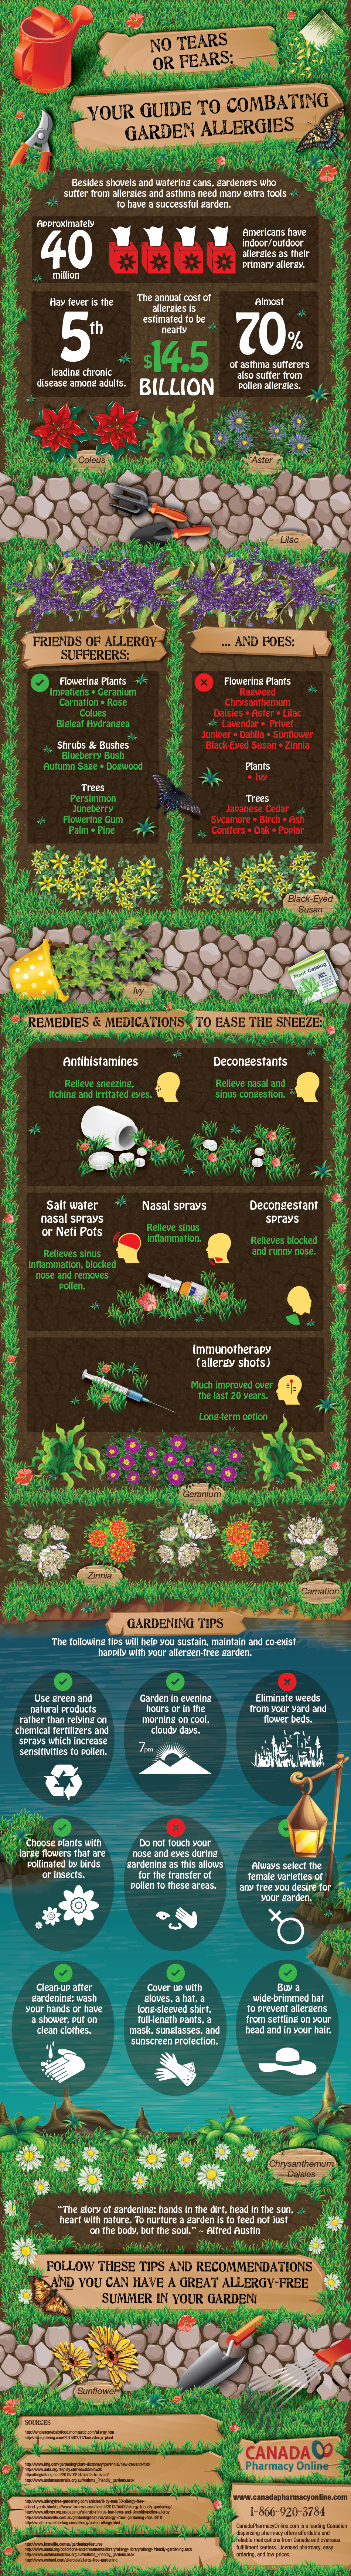 Your Guid to Combating Garden Allergies